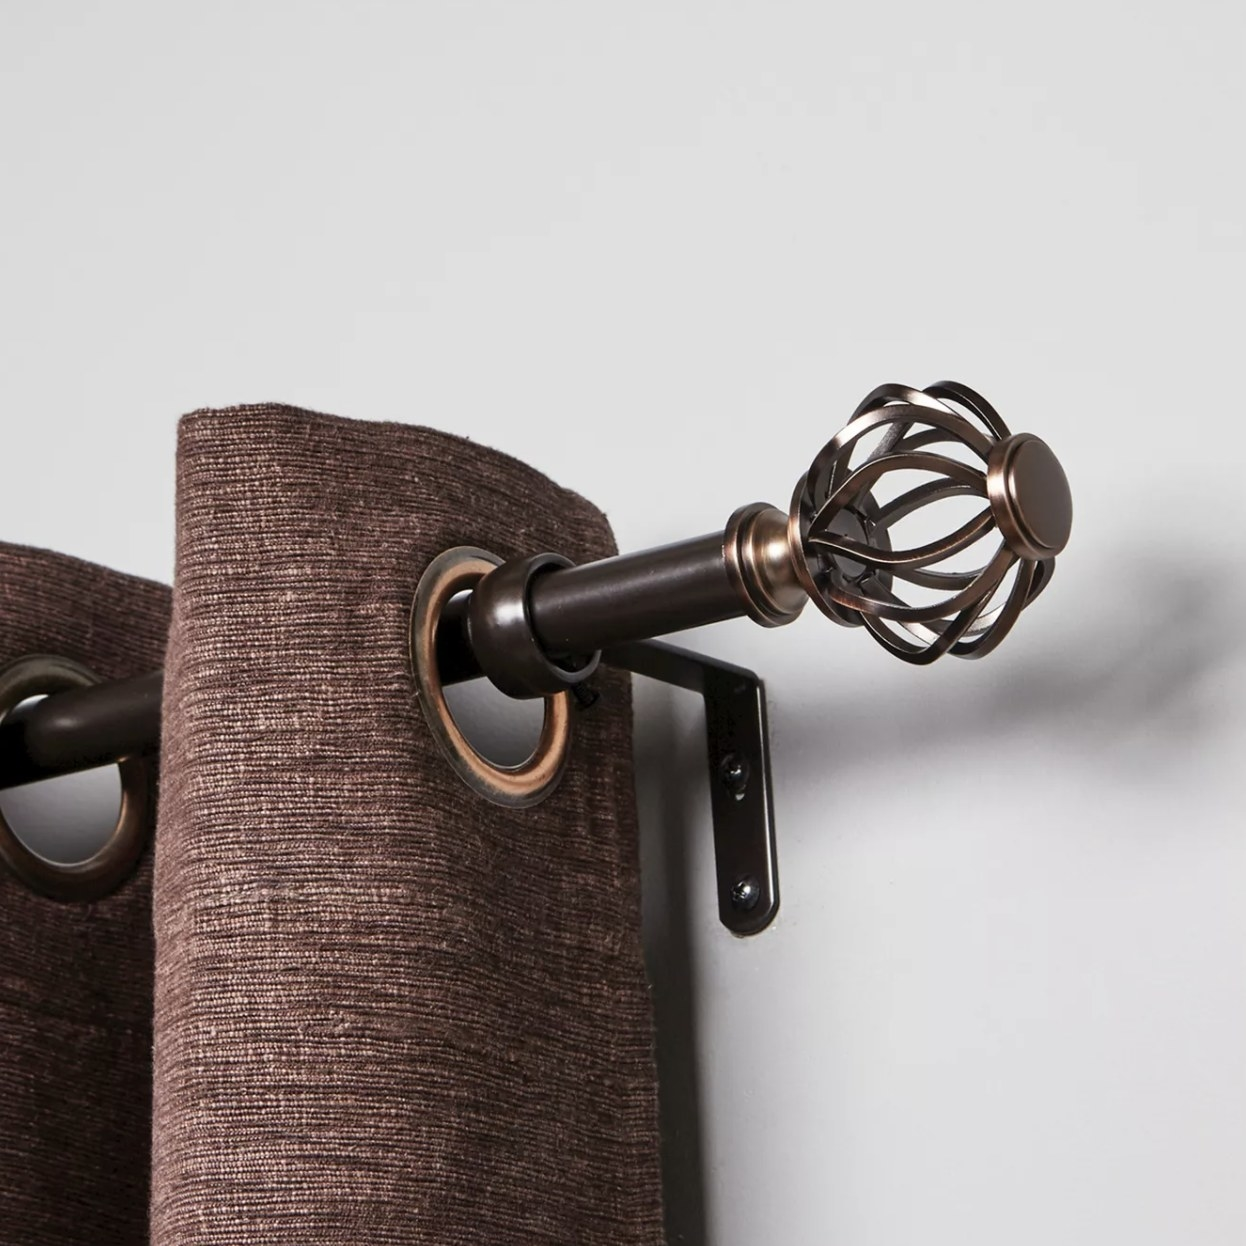 A bronze curtain rod with a brown curtain on it